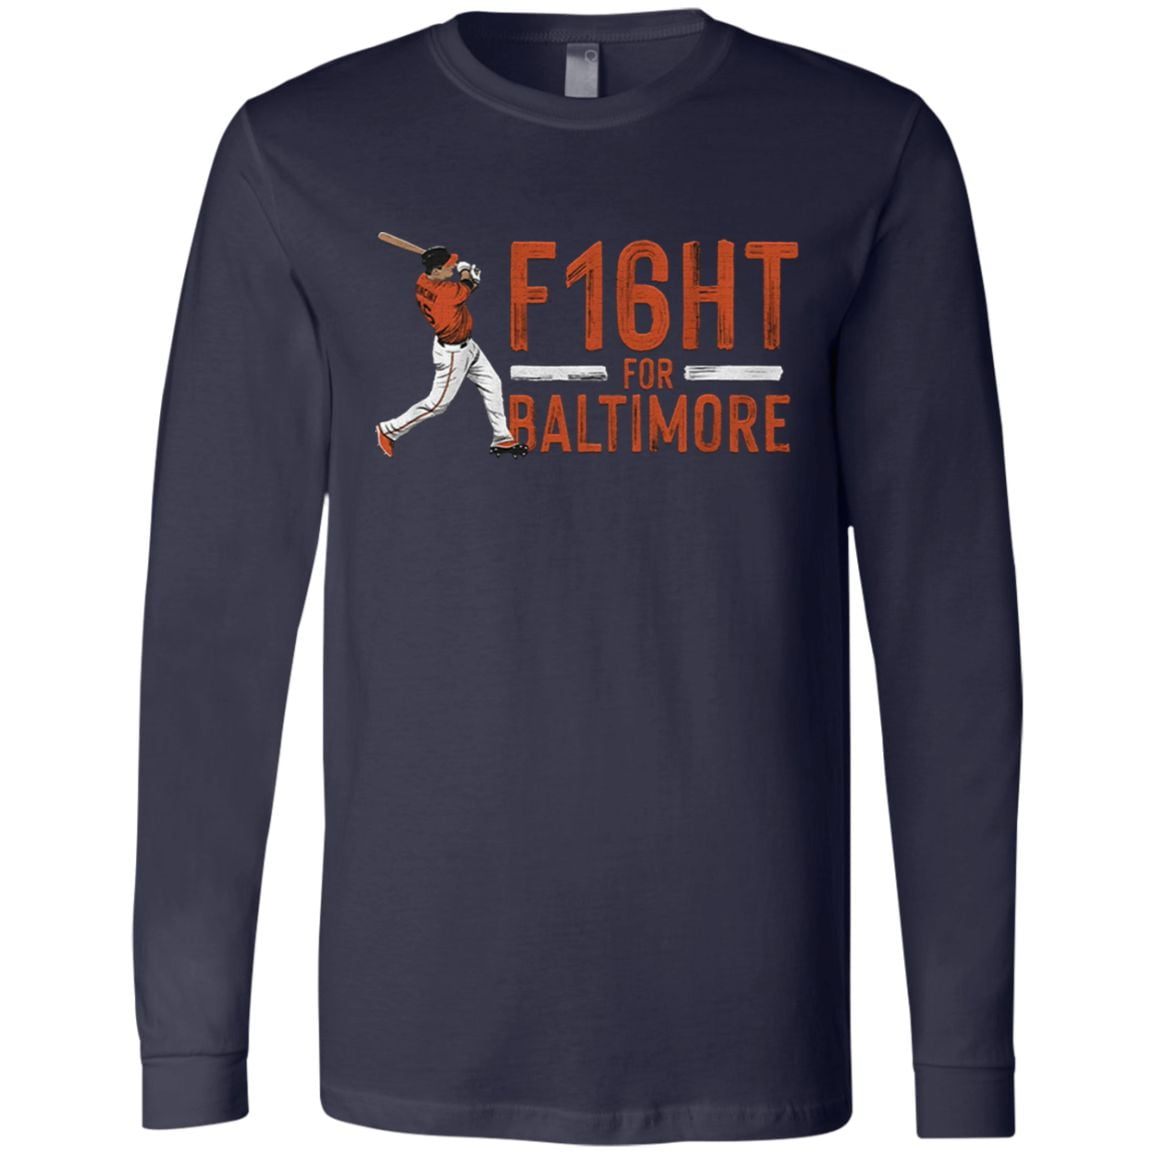 f16ht for baltimore t shirt